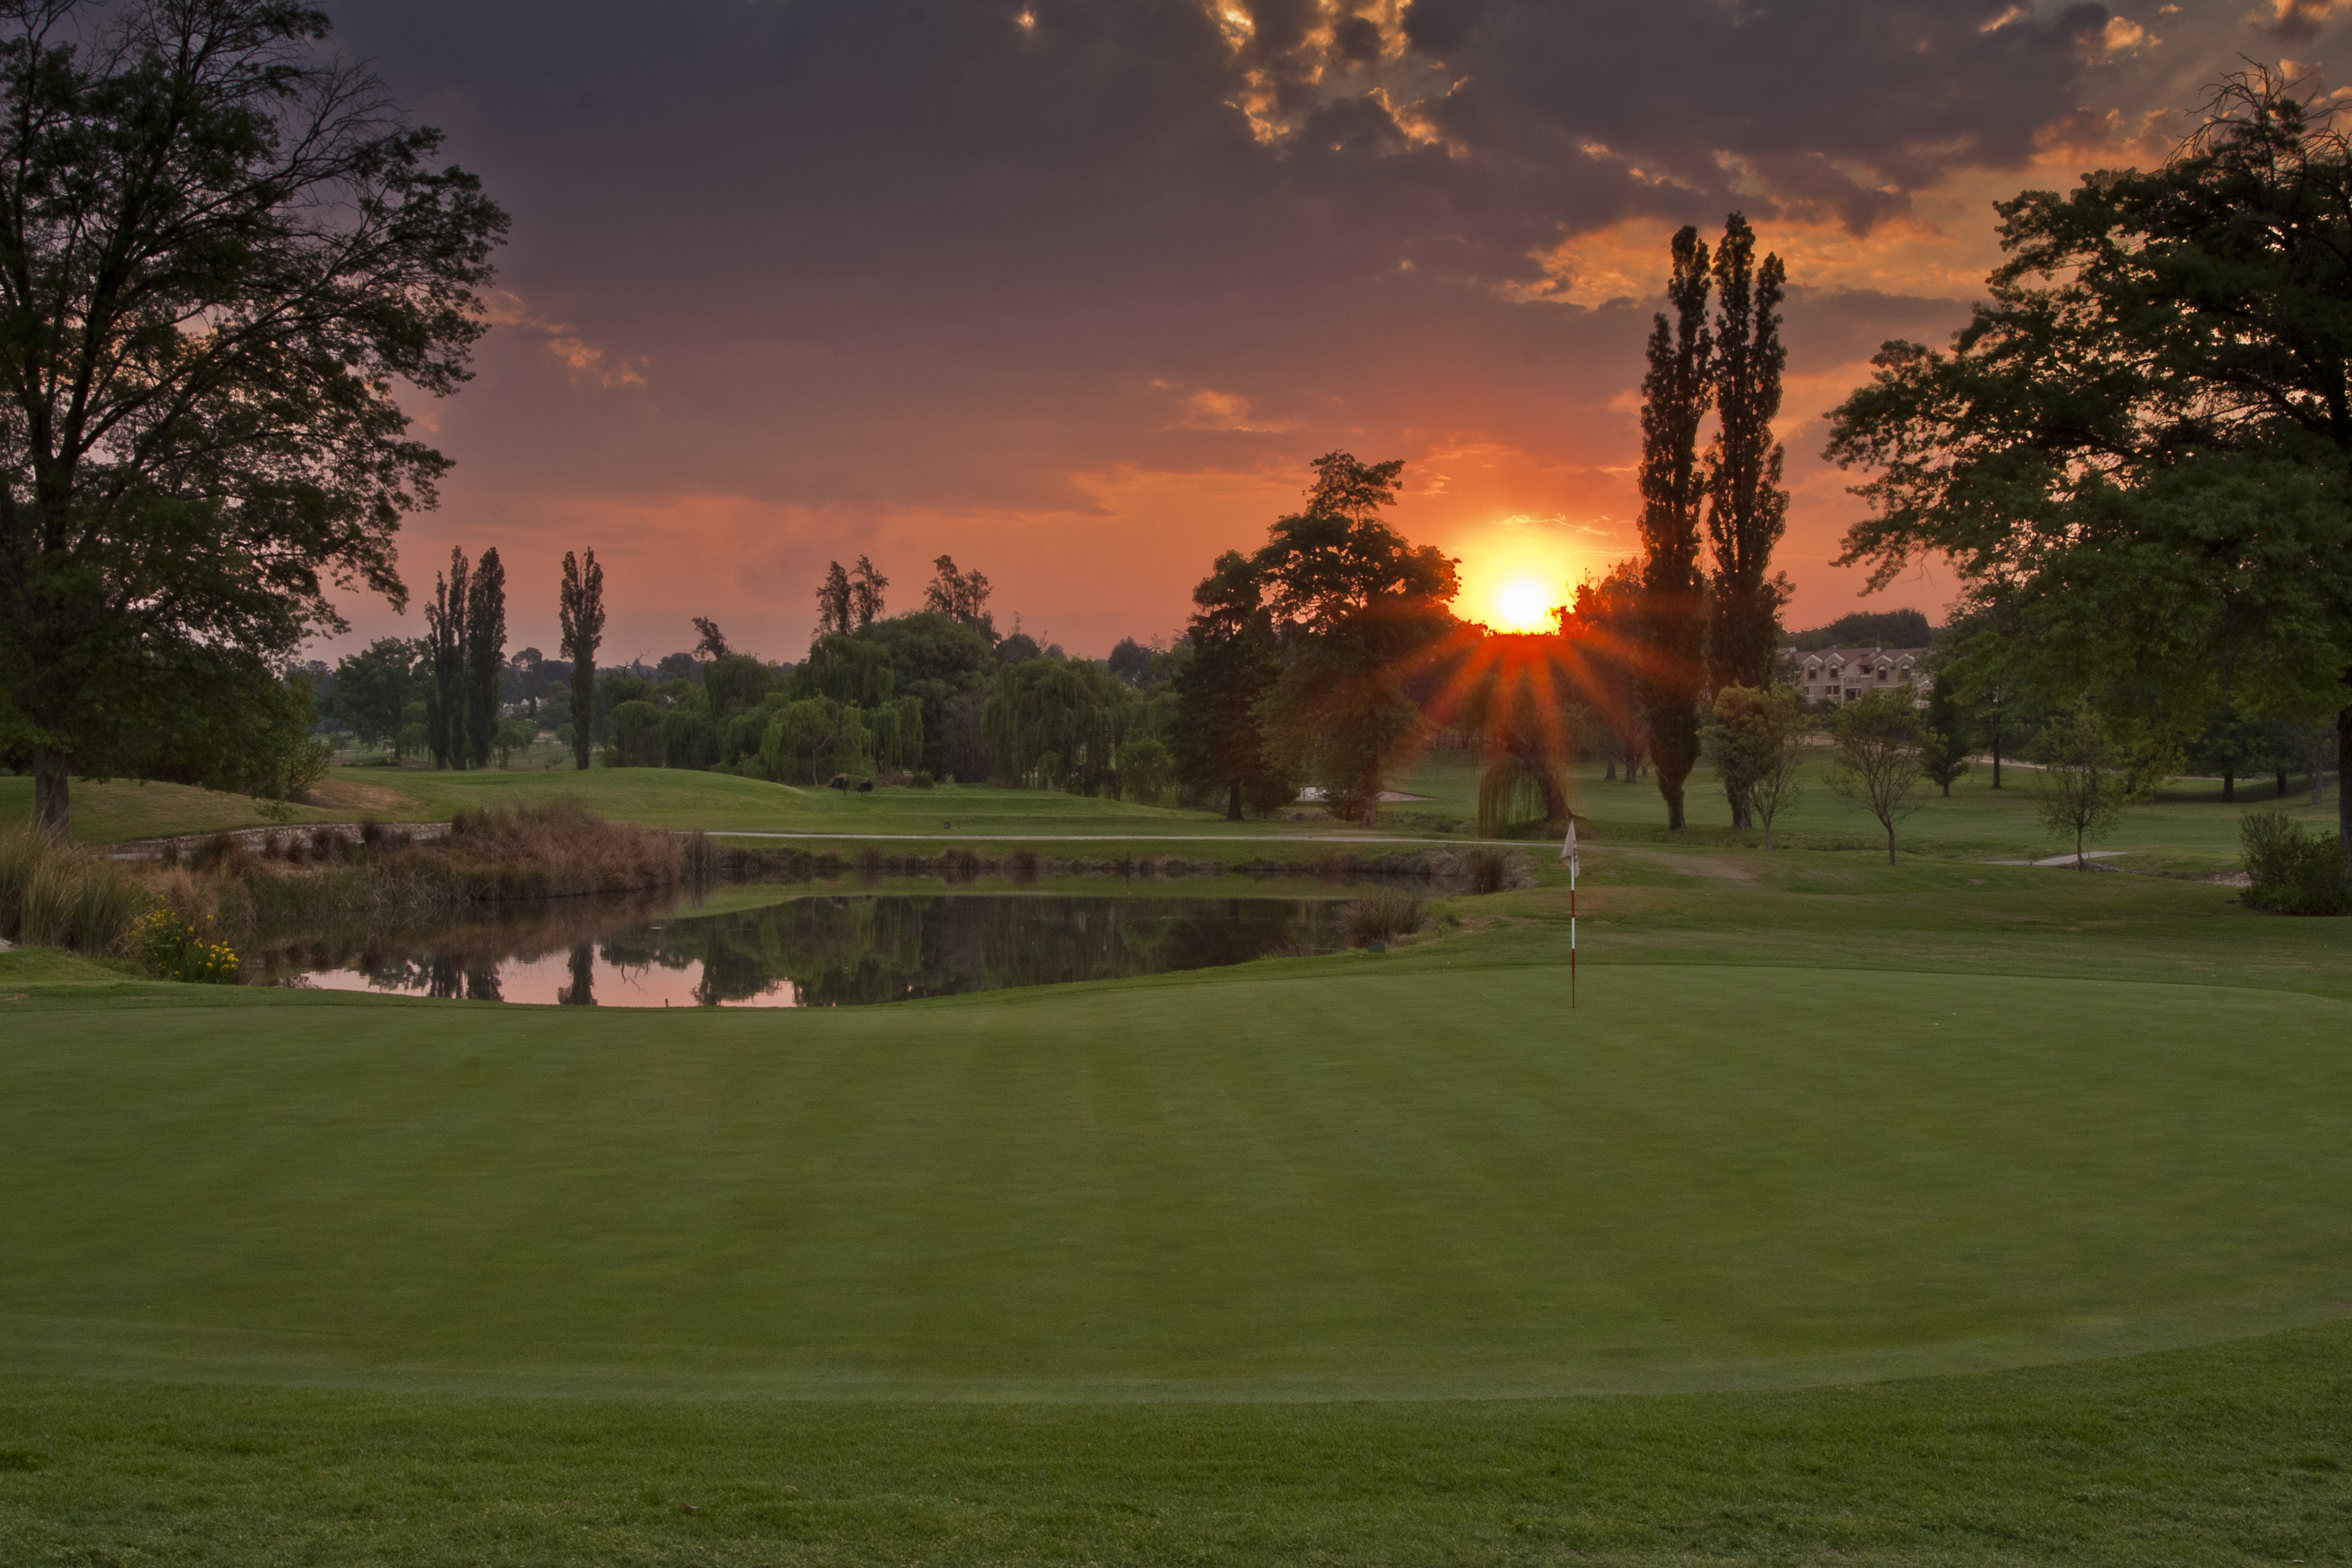 Sunset over the 16th hole on Royal Johannesburg & Kensington's East Course